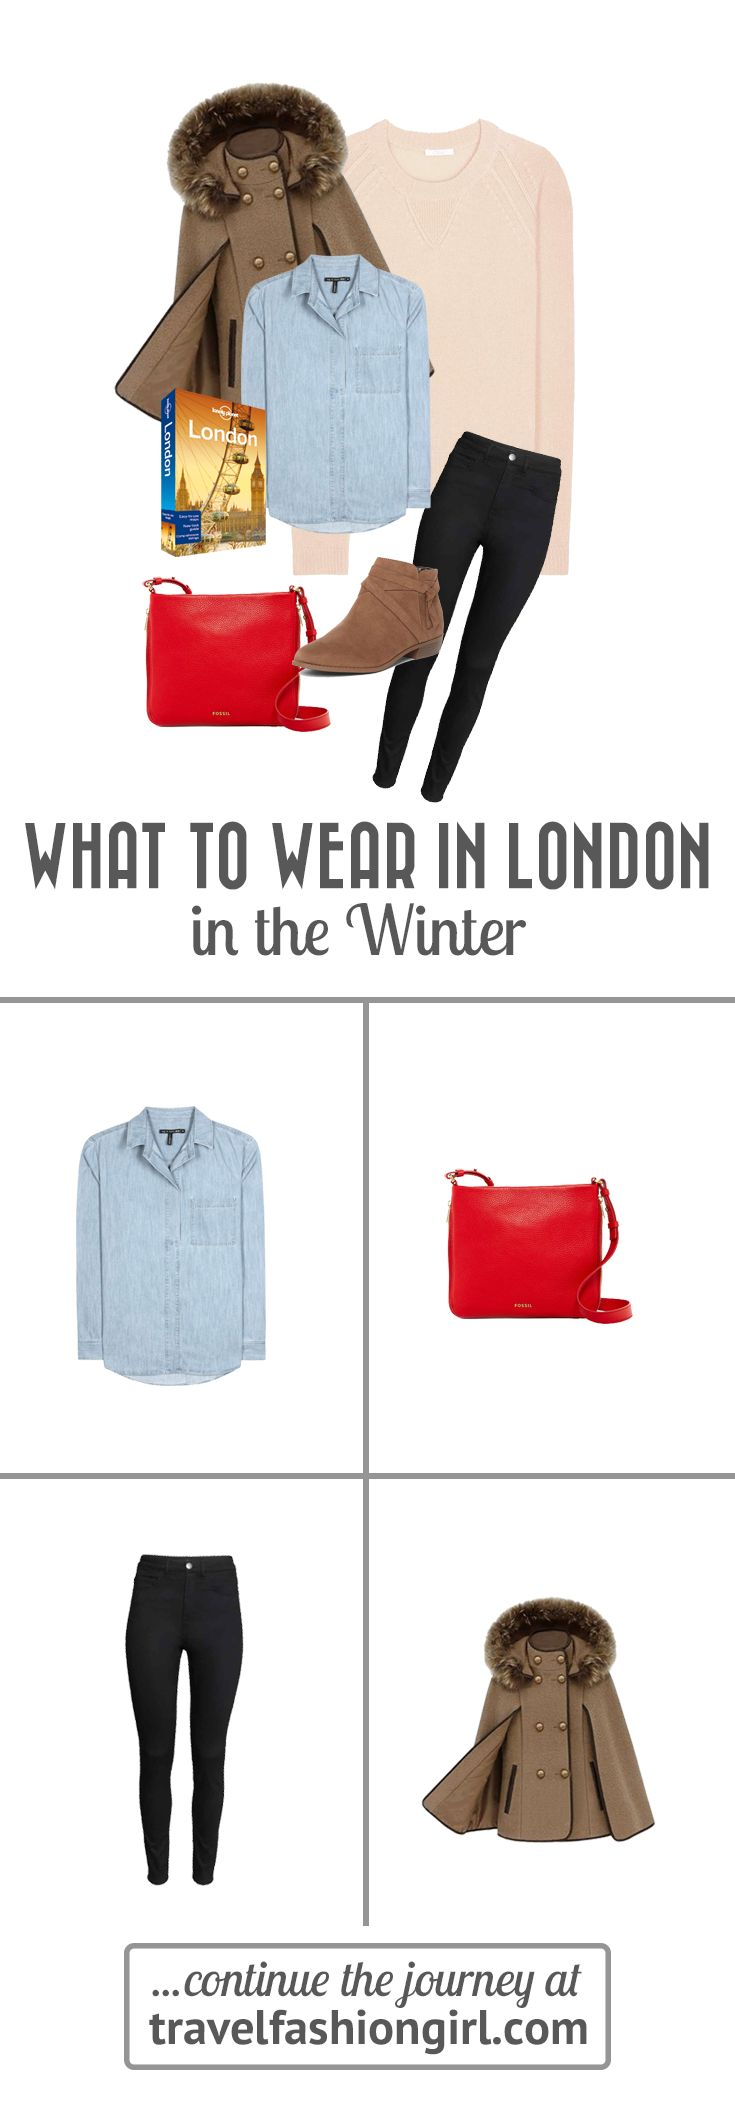 Wondering what to pack for London and other parts of England? Read this to find out what a local fashionista recommends for your packing list for the UK. | travelfashiongirl.com